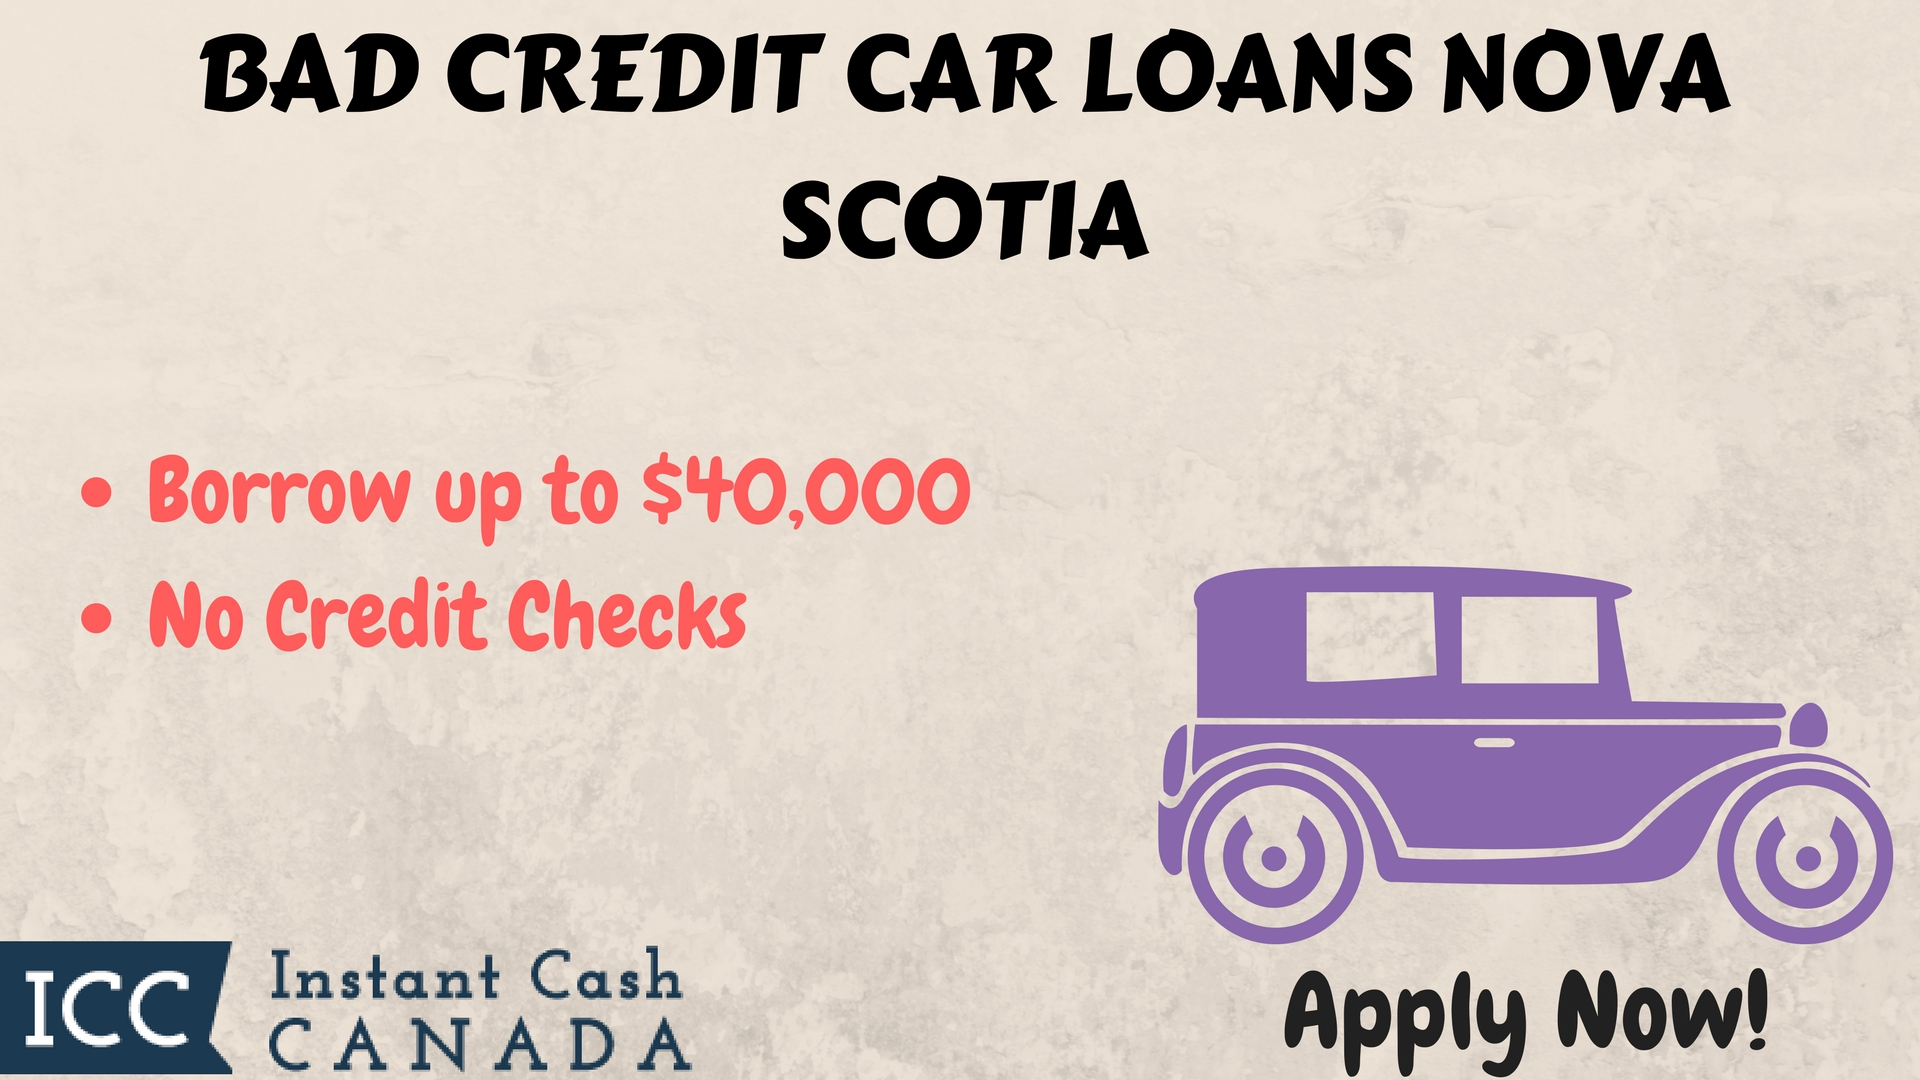 Bad Credit Car Loans Nova Scotia | Instant Cash | Quick Approval